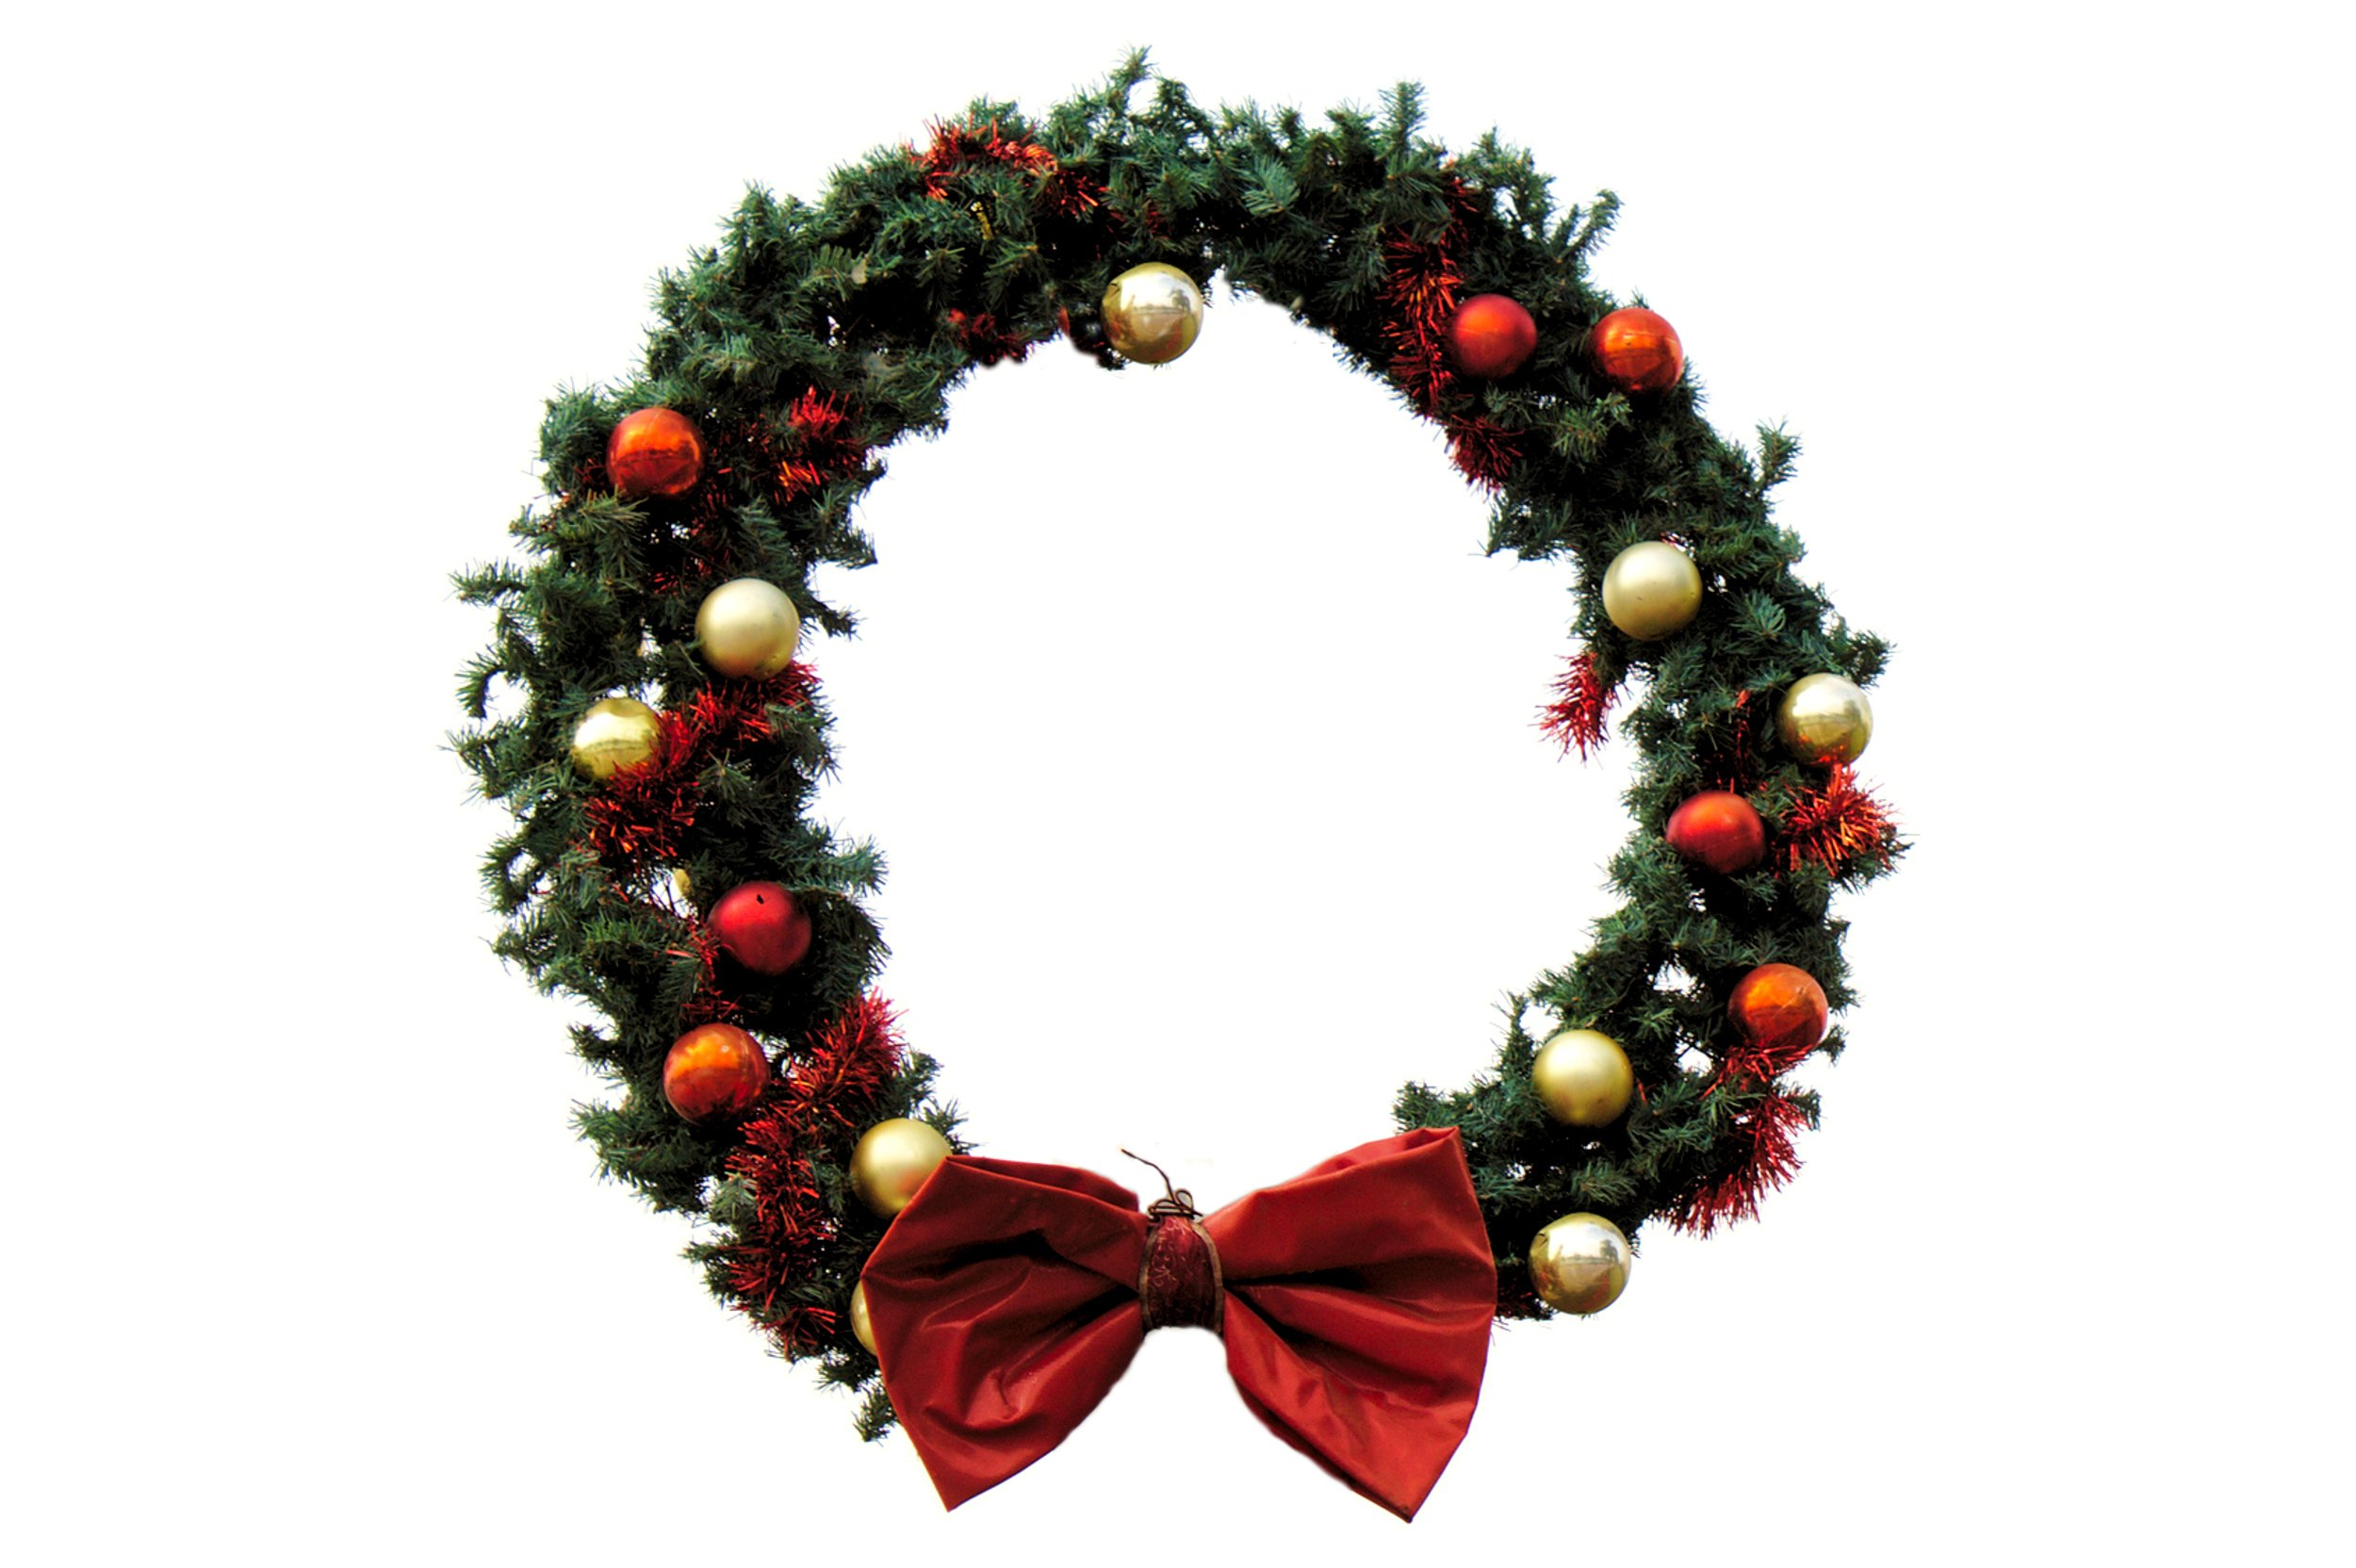 Christmas wreath on white background, Advent, Ornament, Xmas, Wreath, HQ Photo